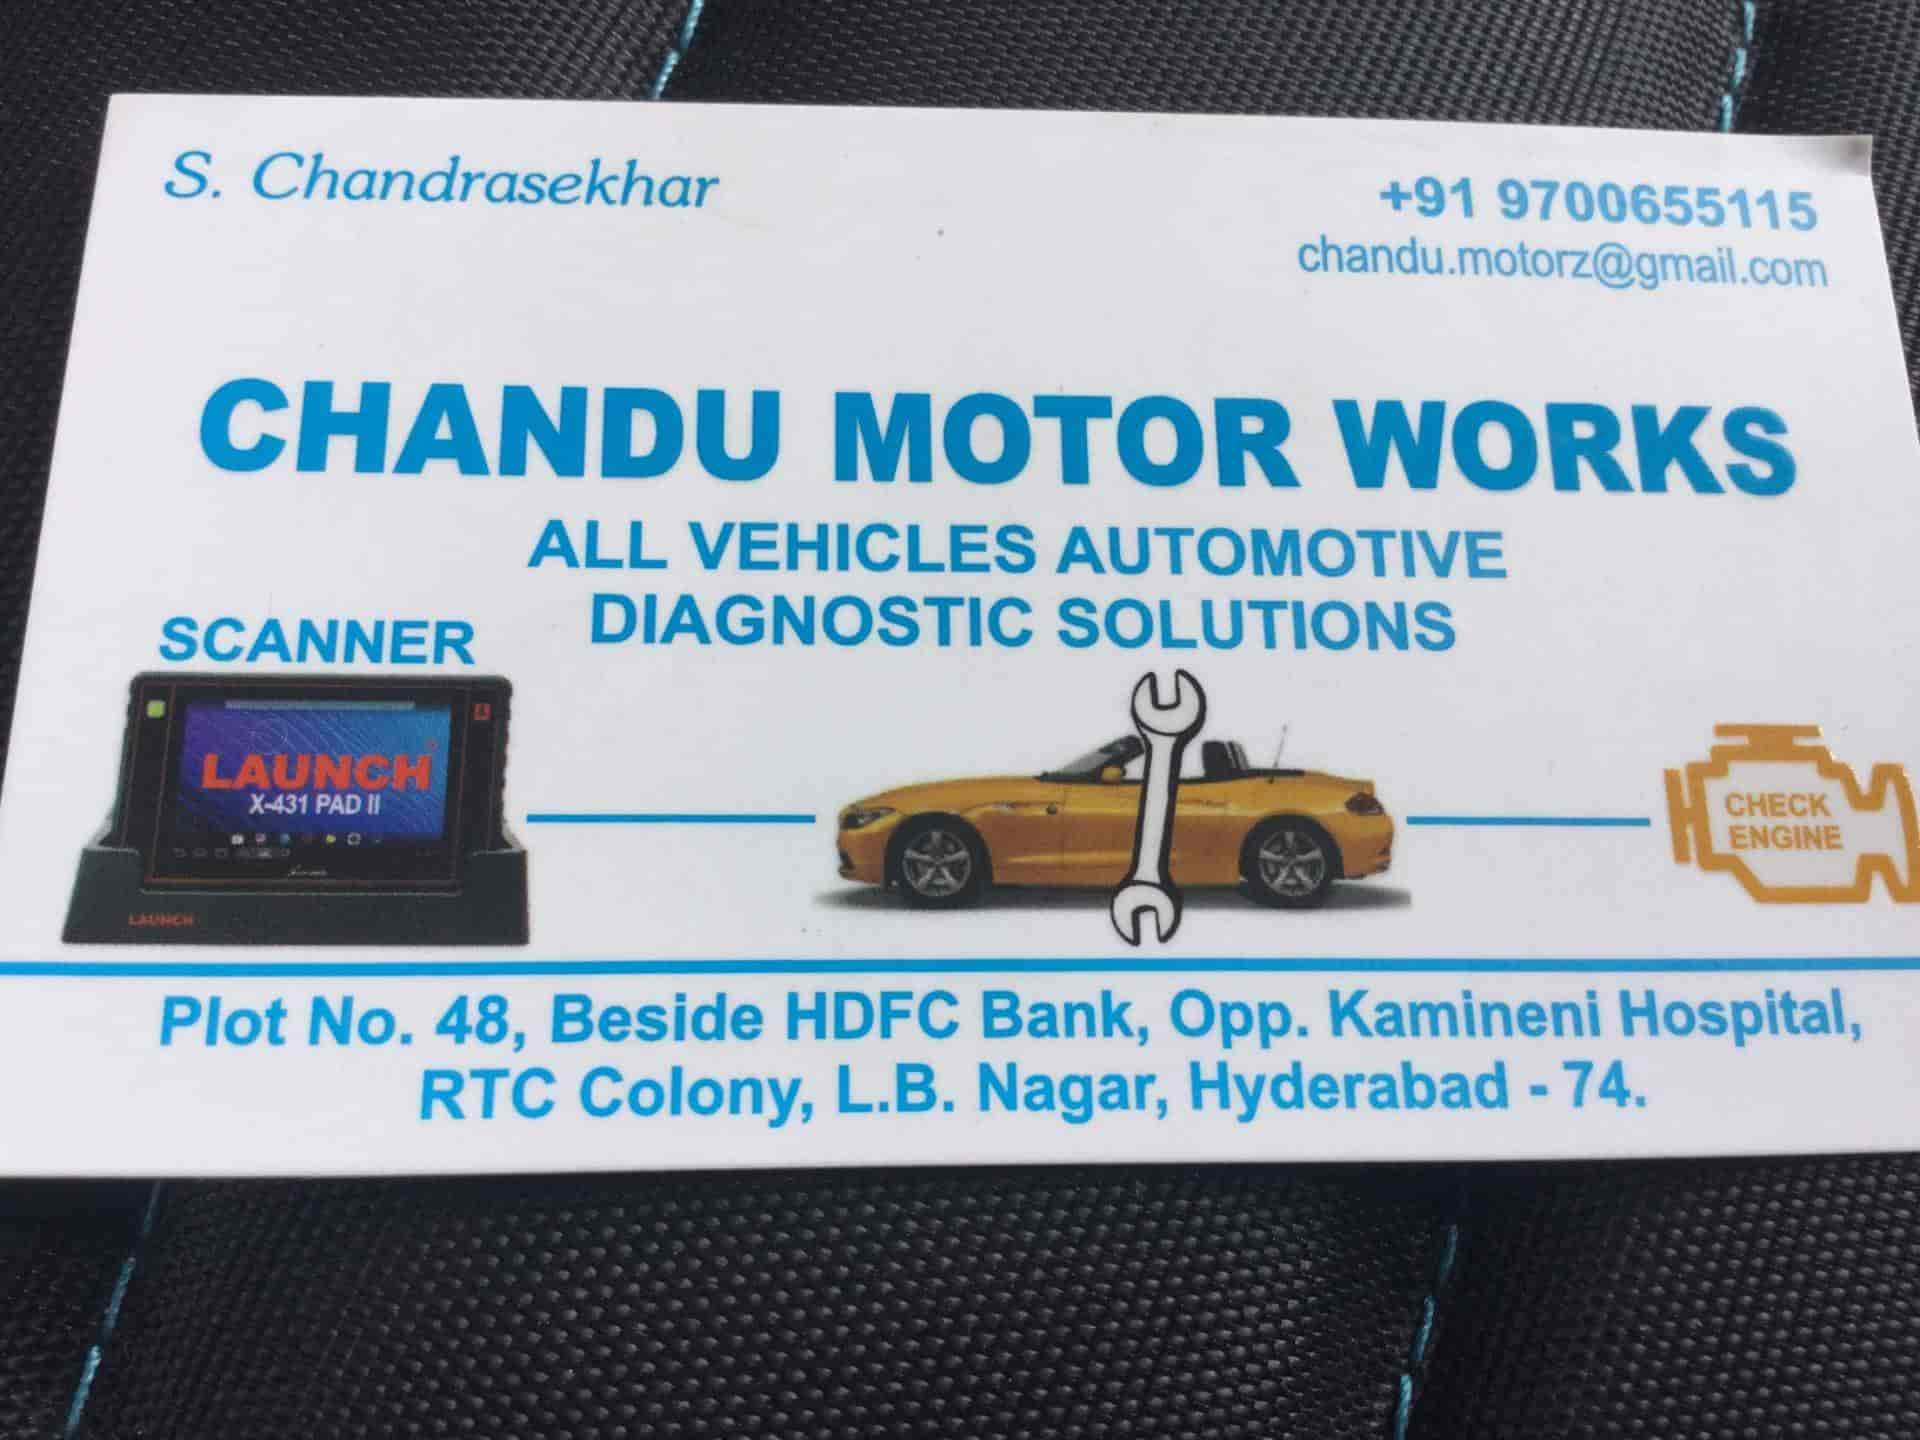 Chandu Motor Works, L B Nagar - Truck Repair & Services in Hyderabad